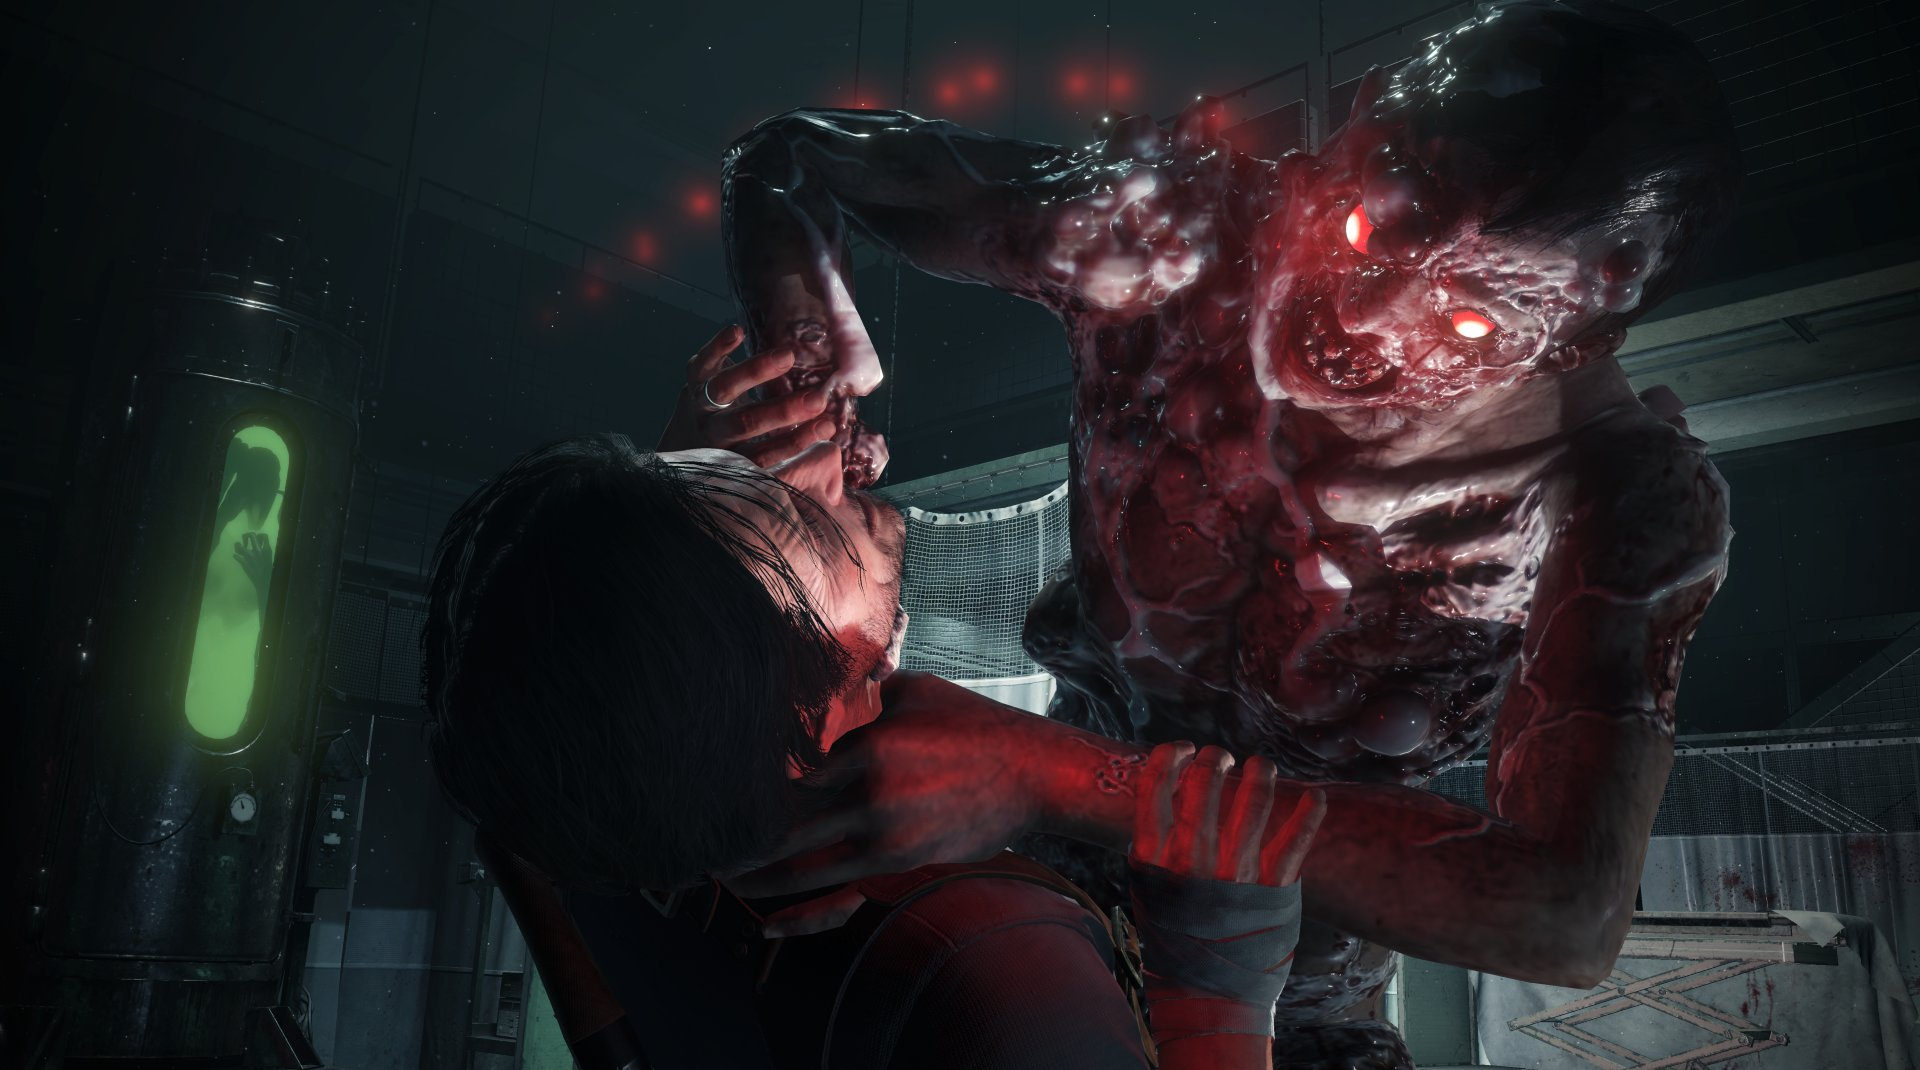 Review: The Evil Within 2 is a haunting and emotional horror masterpiece